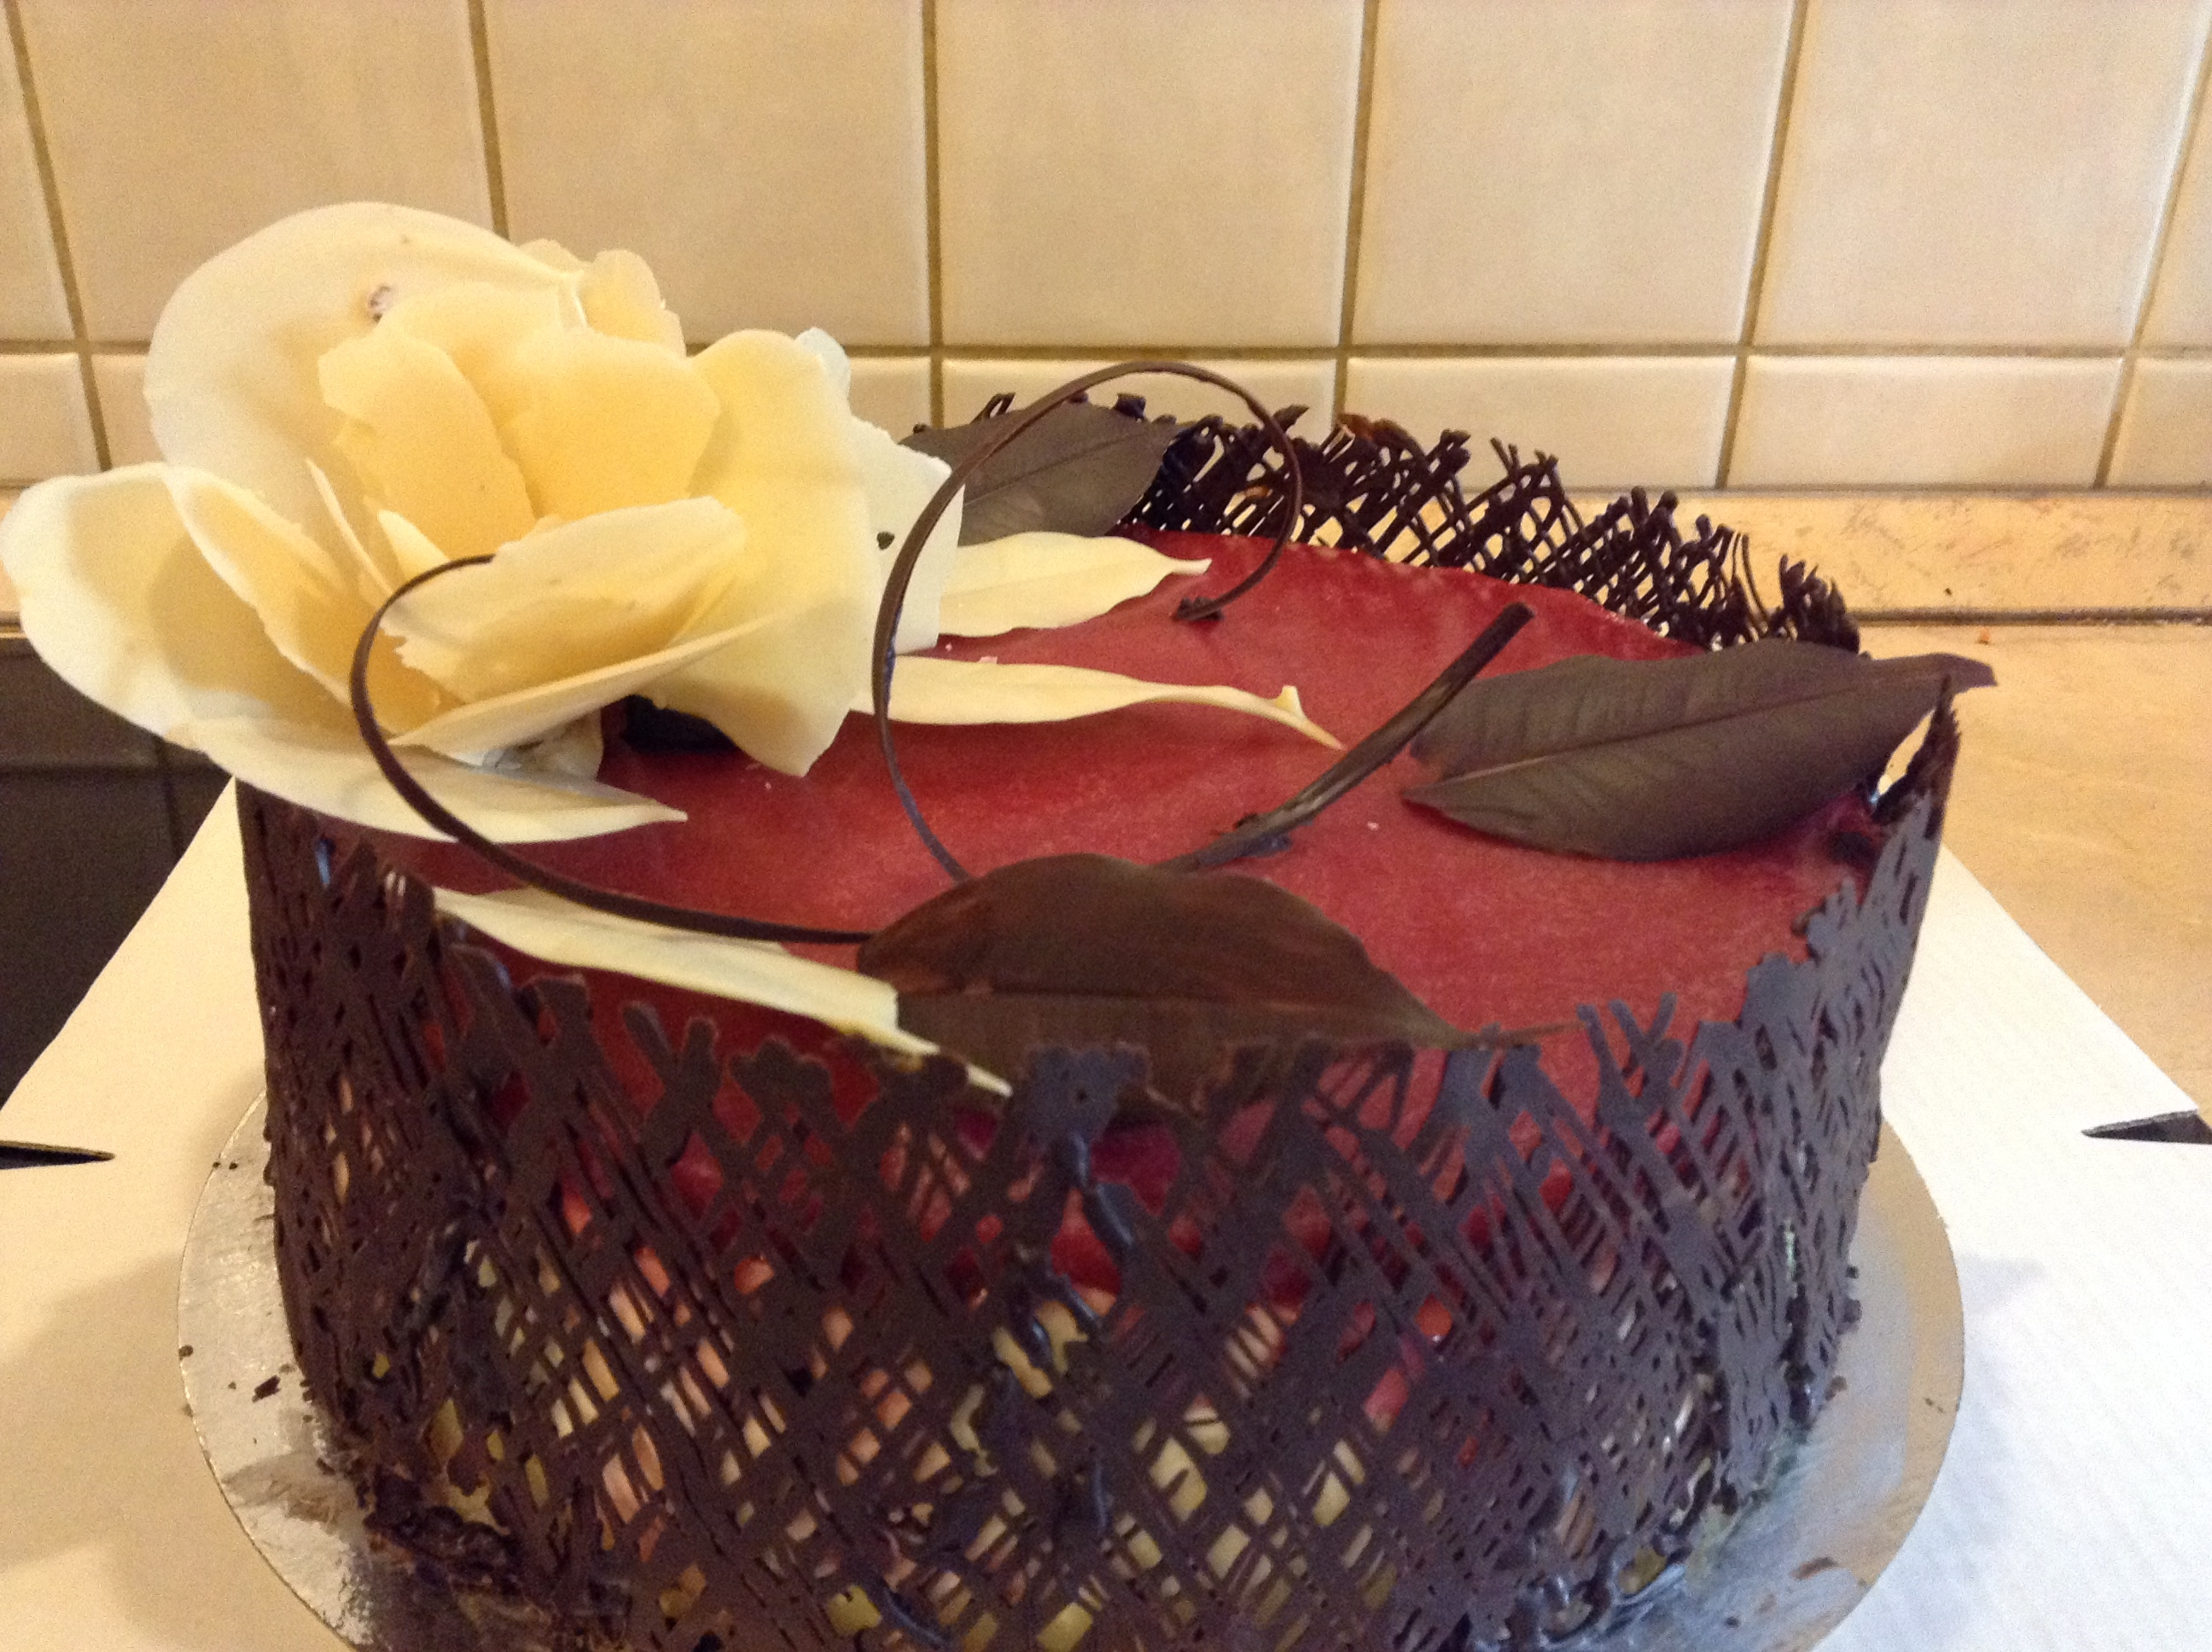 Not Baked Cheesecake With Chocolate Flowers And Leafs This is a burthday cake consisting of 4 layers:biscuit, lemon curd, not baked cheesecake and strawberry jelly. There are a couple of...